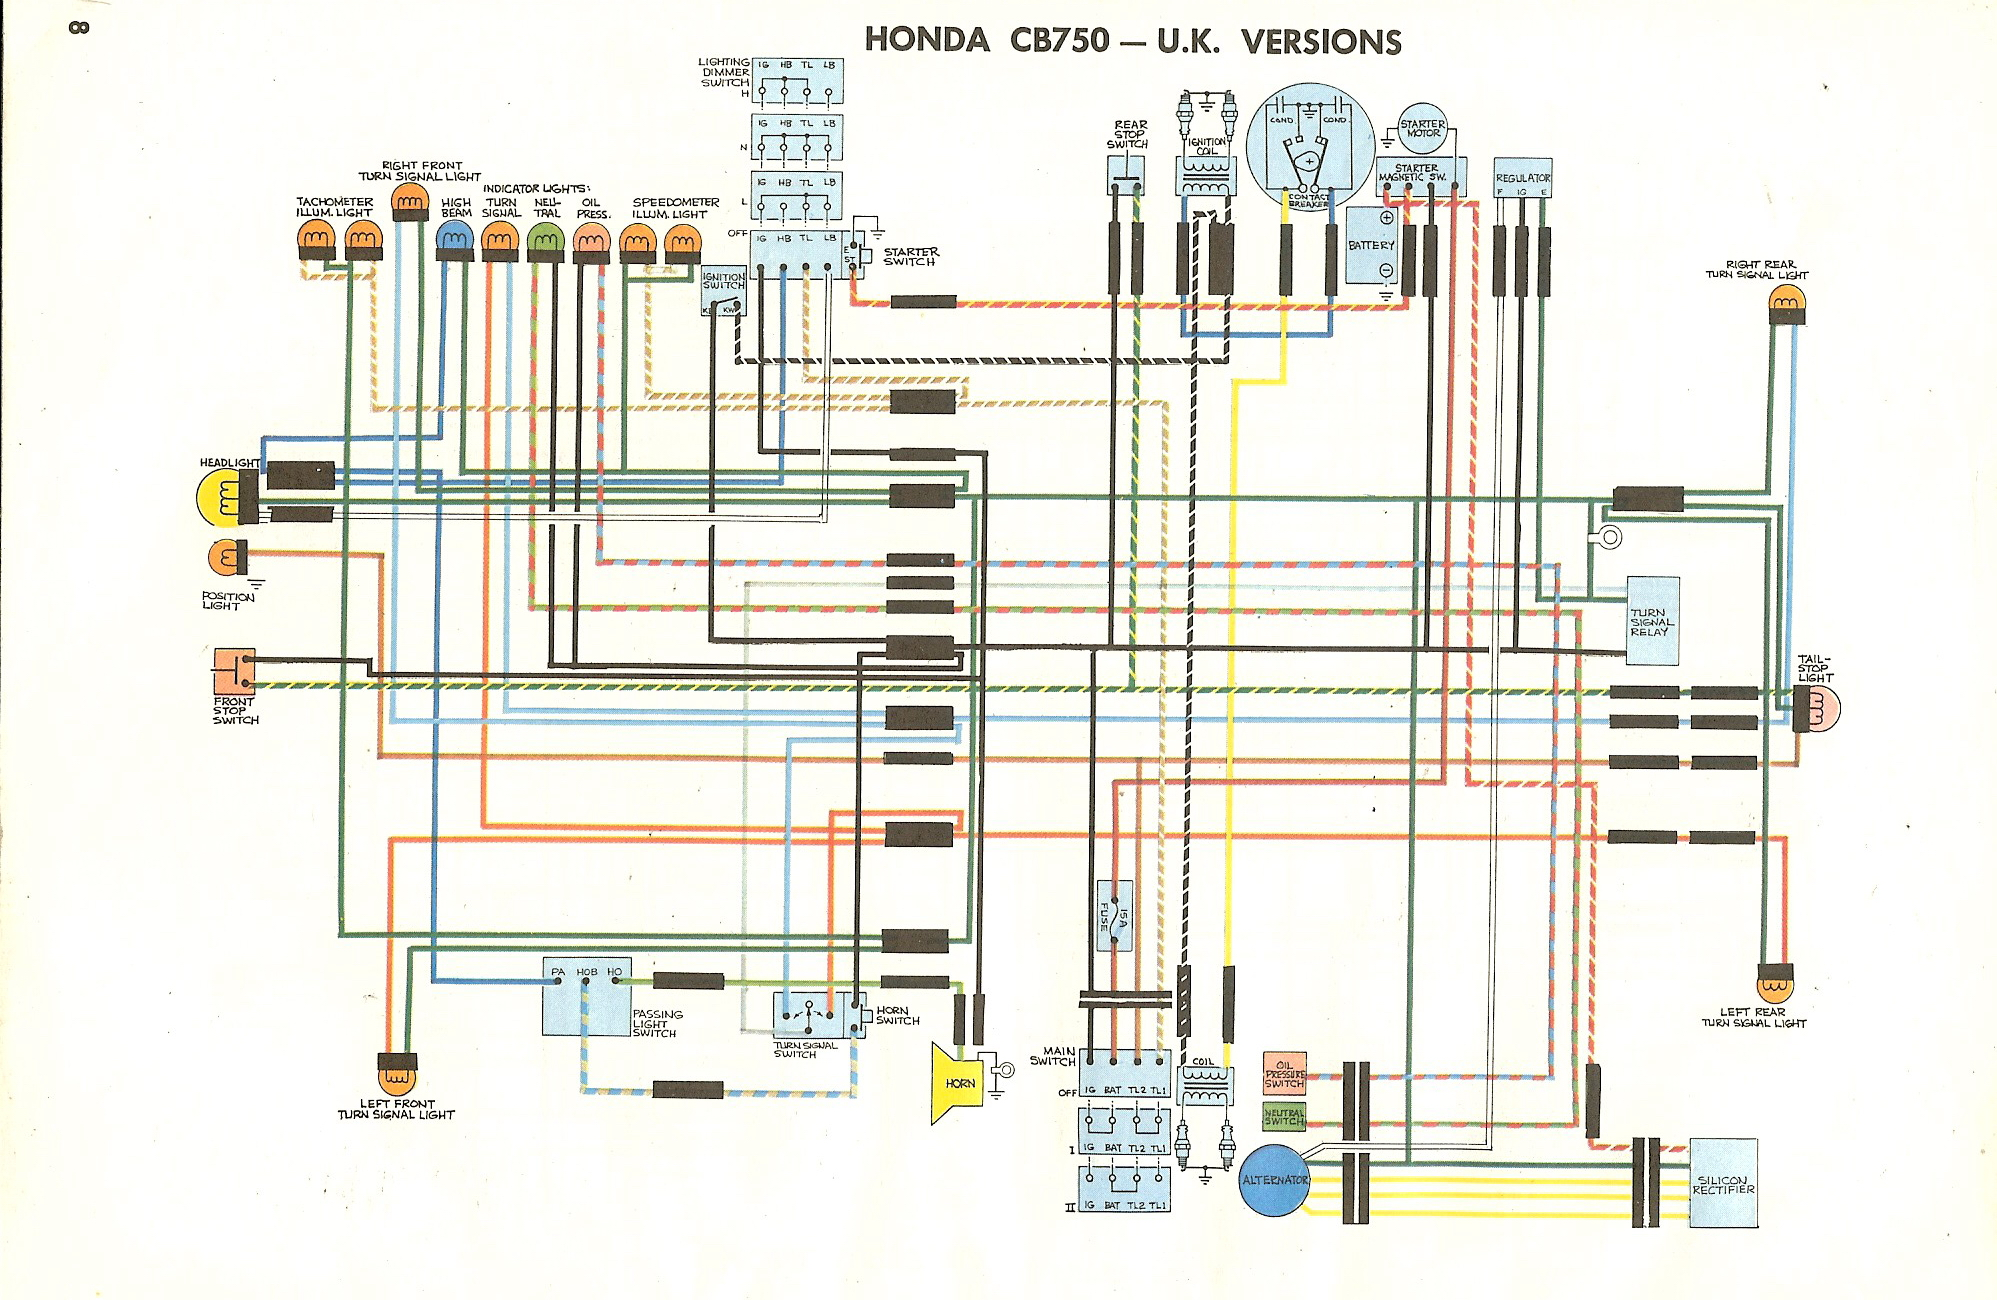 WD750UK cb750k wiring diagram 1973 honda cb750 wiring diagram \u2022 wiring 1991 honda nighthawk 750 wiring schematic at alyssarenee.co